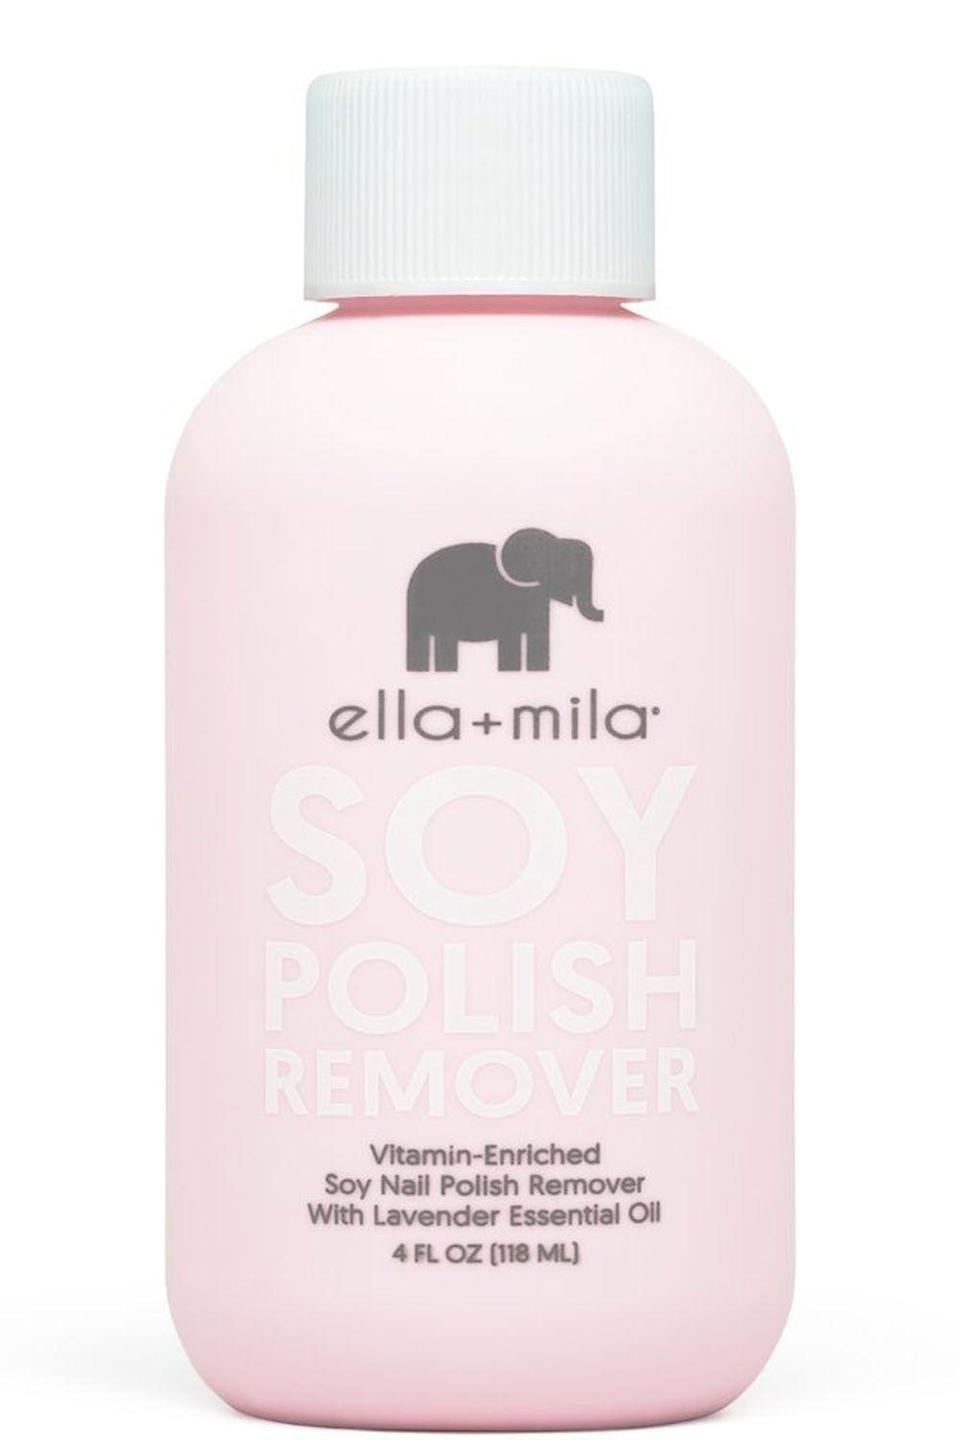 """<p><strong>ella mila</strong></p><p>target.com</p><p><strong>$11.49</strong></p><p><a href=""""https://www.target.com/p/ella-mila-soy-nail-polish-remover-4-fl-oz/-/A-52901524"""" rel=""""nofollow noopener"""" target=""""_blank"""" data-ylk=""""slk:Shop Now"""" class=""""link rapid-noclick-resp"""">Shop Now</a></p><p>Some nail polish removers are so harsh, they feel like they're taking off the top layer of your nails along with your polish. You don't have to worry about that with this soy-based remover, though. <strong>It's extra gentle and it's packed with <a href=""""https://www.cosmopolitan.com/style-beauty/beauty/a27609307/vitamin-e-for-skin-benefits-products/"""" rel=""""nofollow noopener"""" target=""""_blank"""" data-ylk=""""slk:vitamins E"""" class=""""link rapid-noclick-resp"""">vitamins E</a>, C, and A</strong> to help promote nail growth.<br></p>"""